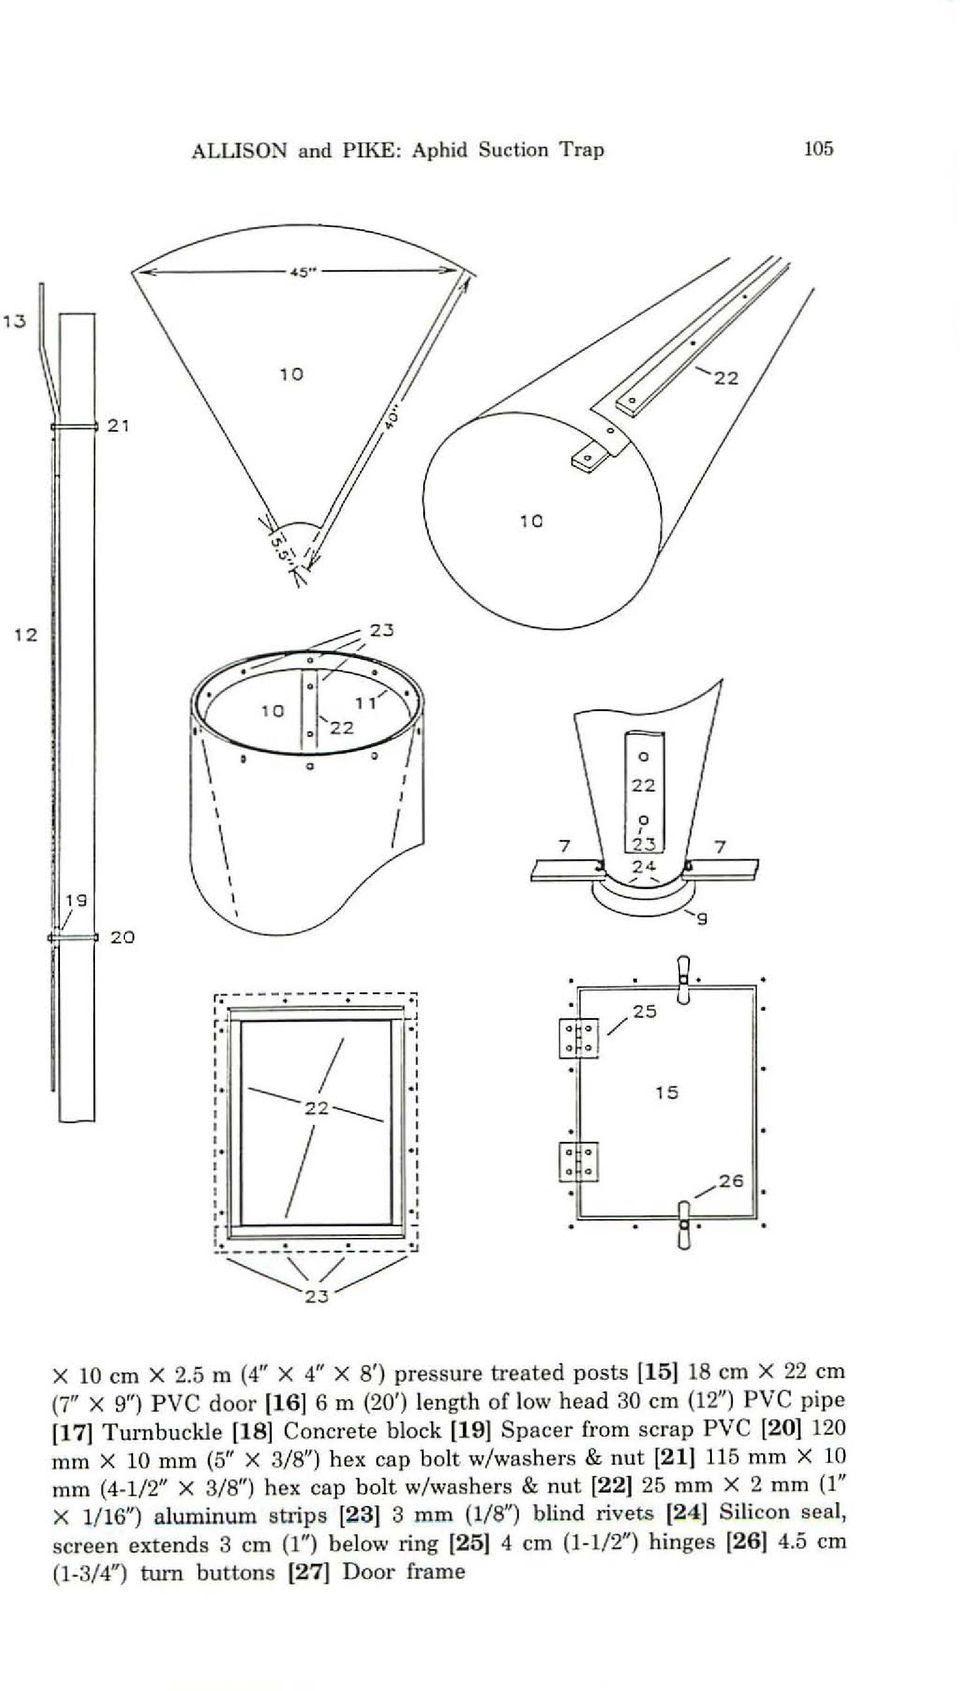 an inexpensive suction trap and its use in an aphid monitoring Telescoping Cleaning Pole concrete block 119j spacer from scrap pvc 120j 120 mm x 10 mm 5